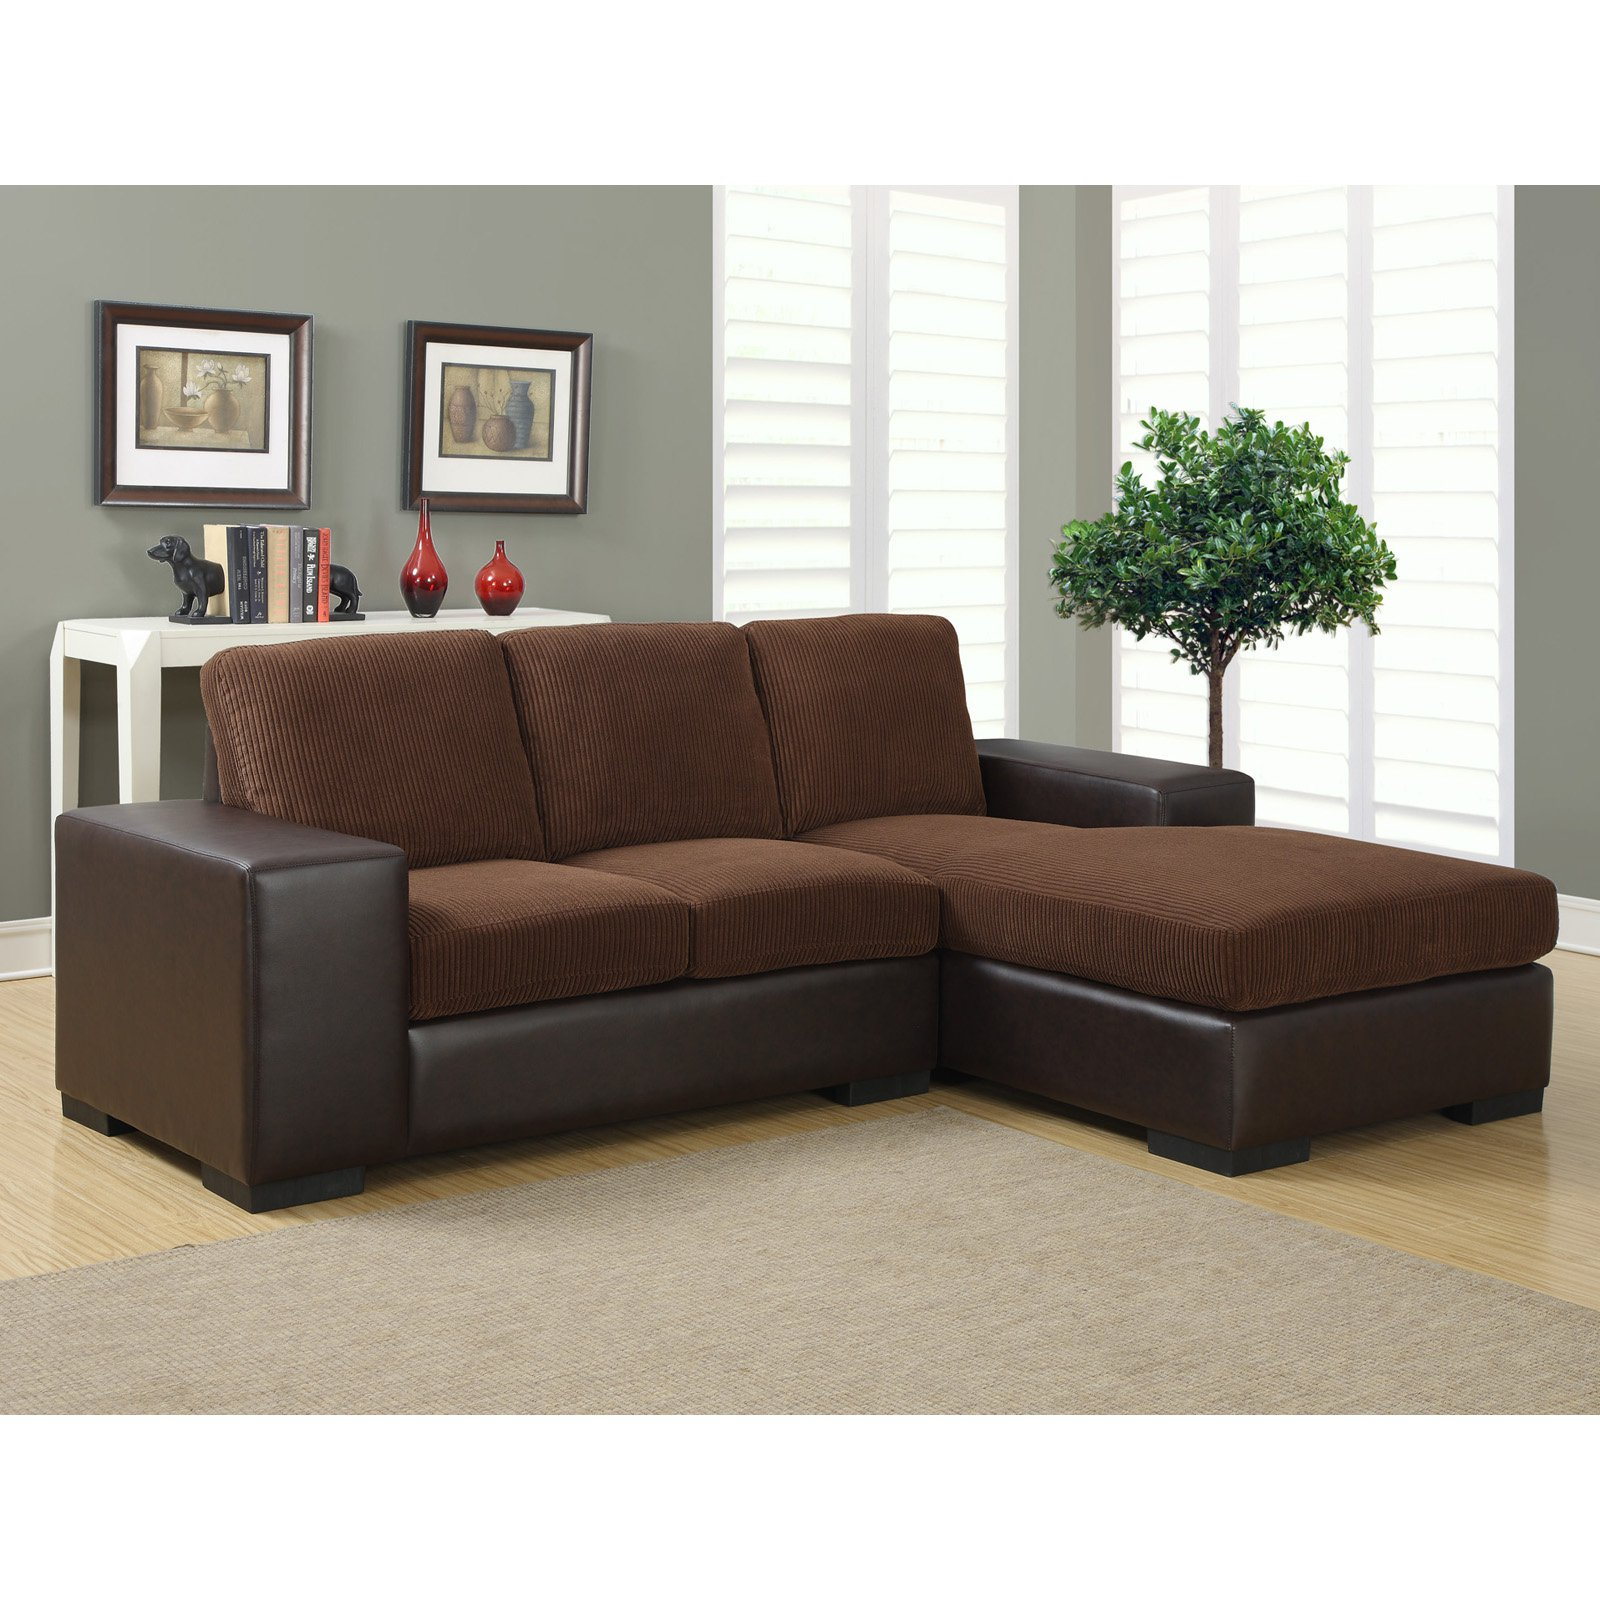 Monarch Specialties Sheffield Leather and Fabric Sofa Lounger